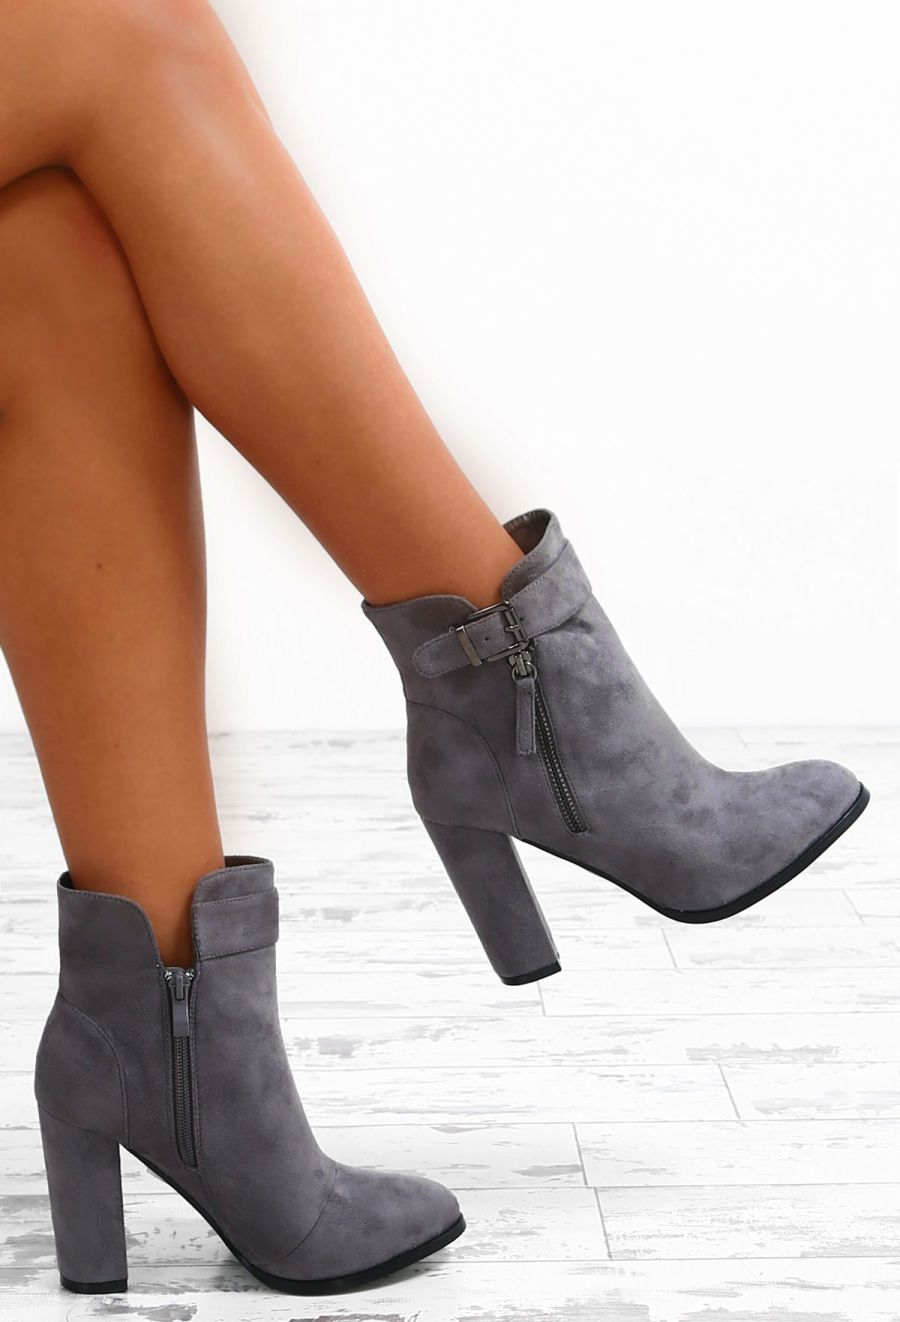 56fca260d21 High Profile Grey Faux Suede Block Heel Ankle Boots - UK 3 in 2019 ...